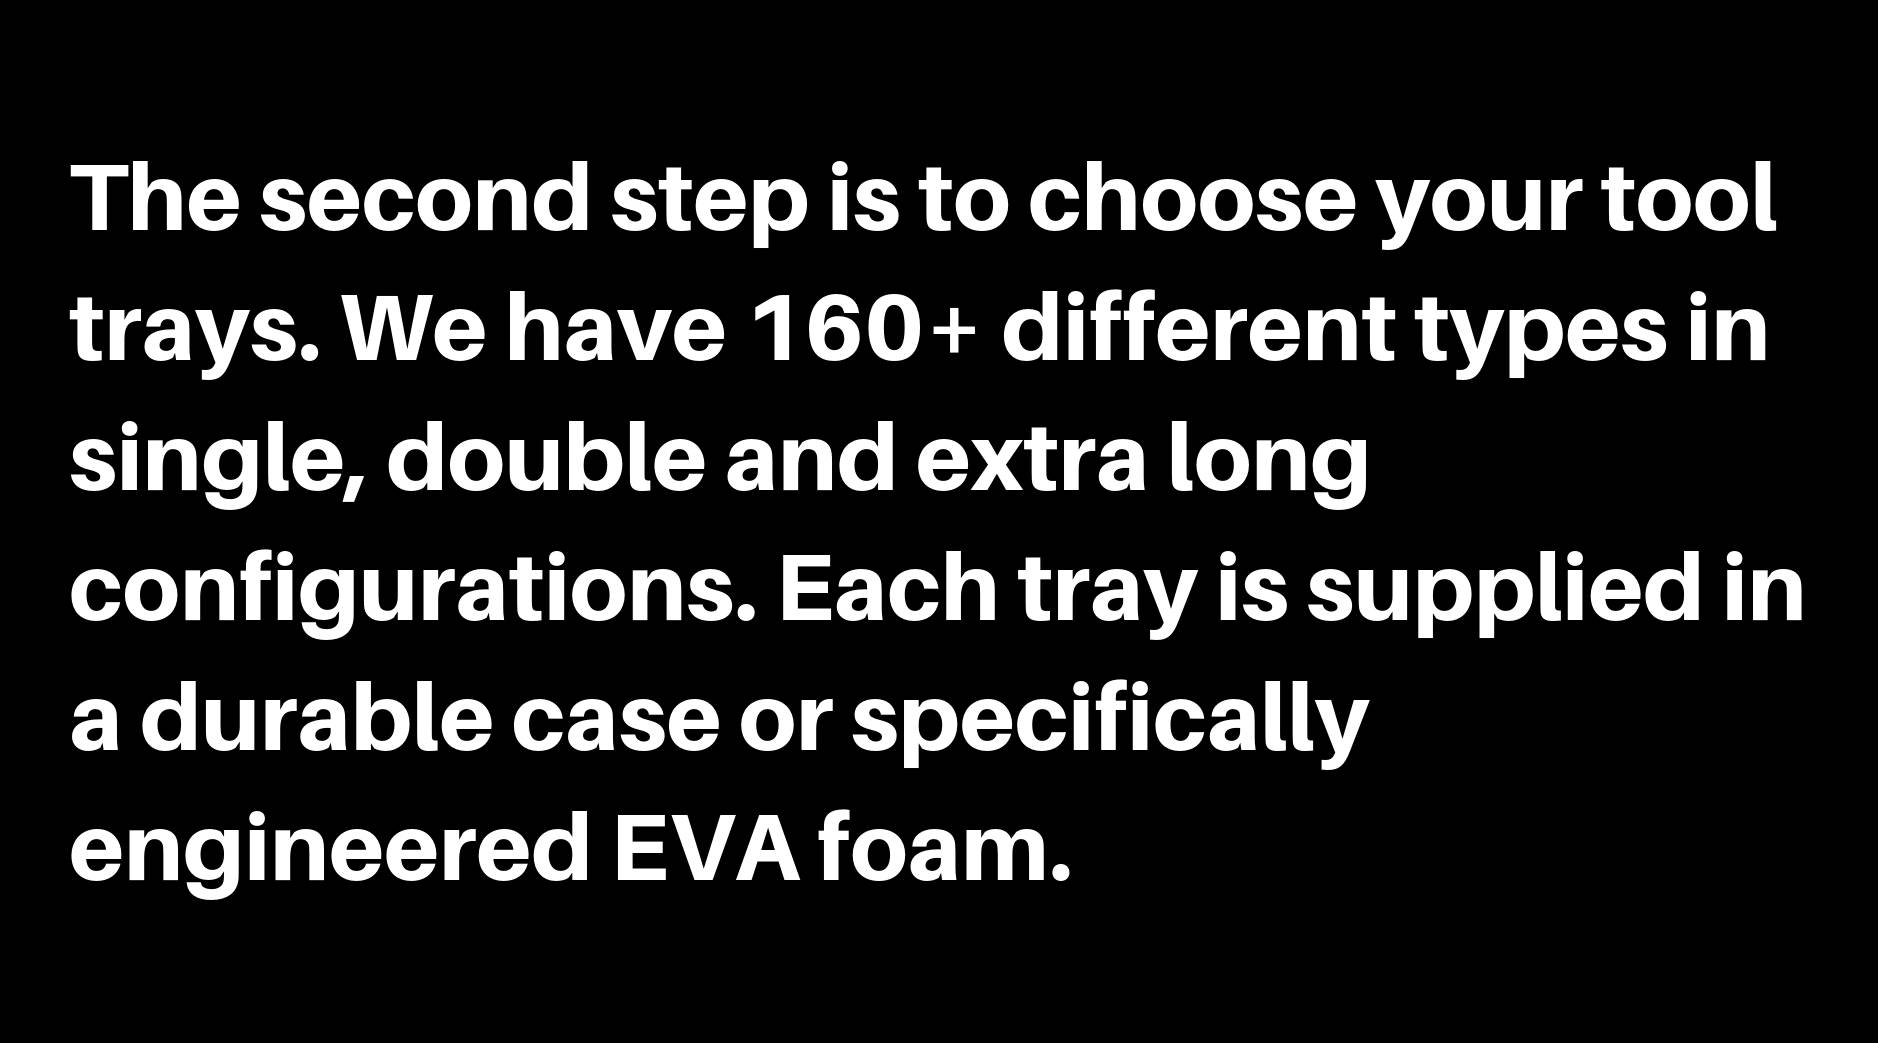 The second step is to choose your tool trays. We have 160+ different types in single, double and extra long configurations. Each tray is supplied in a durable case or specifically engineered EVA foam.